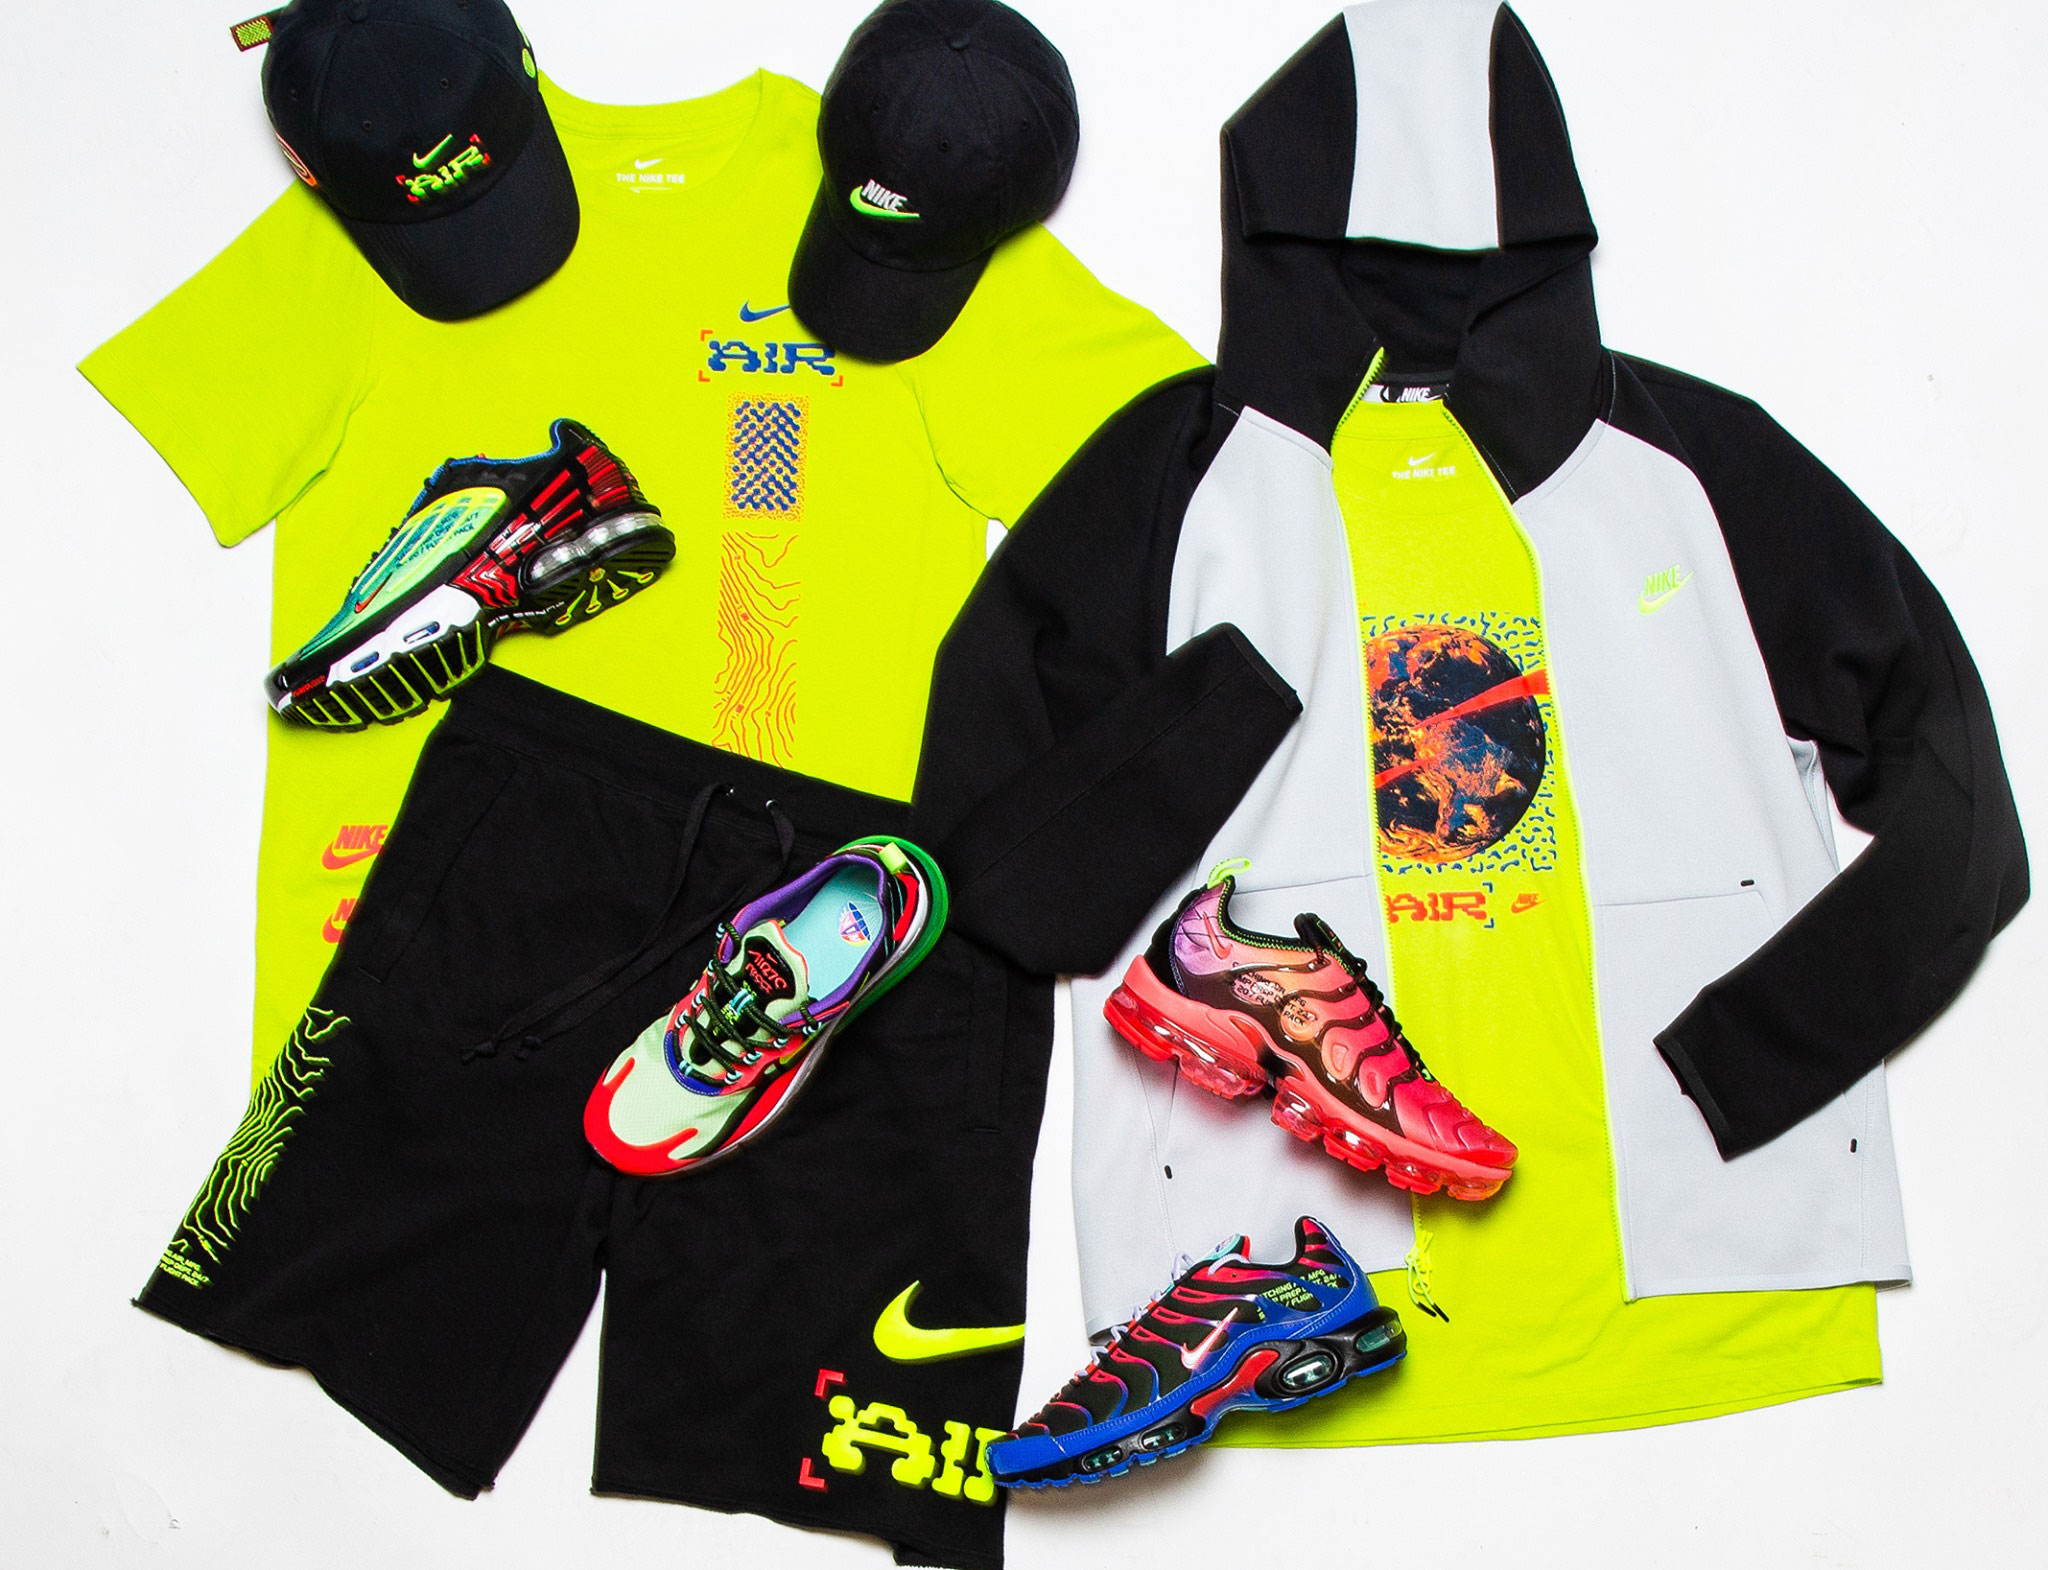 nike-air-max-day-2020-sneakers-clothing-outfits